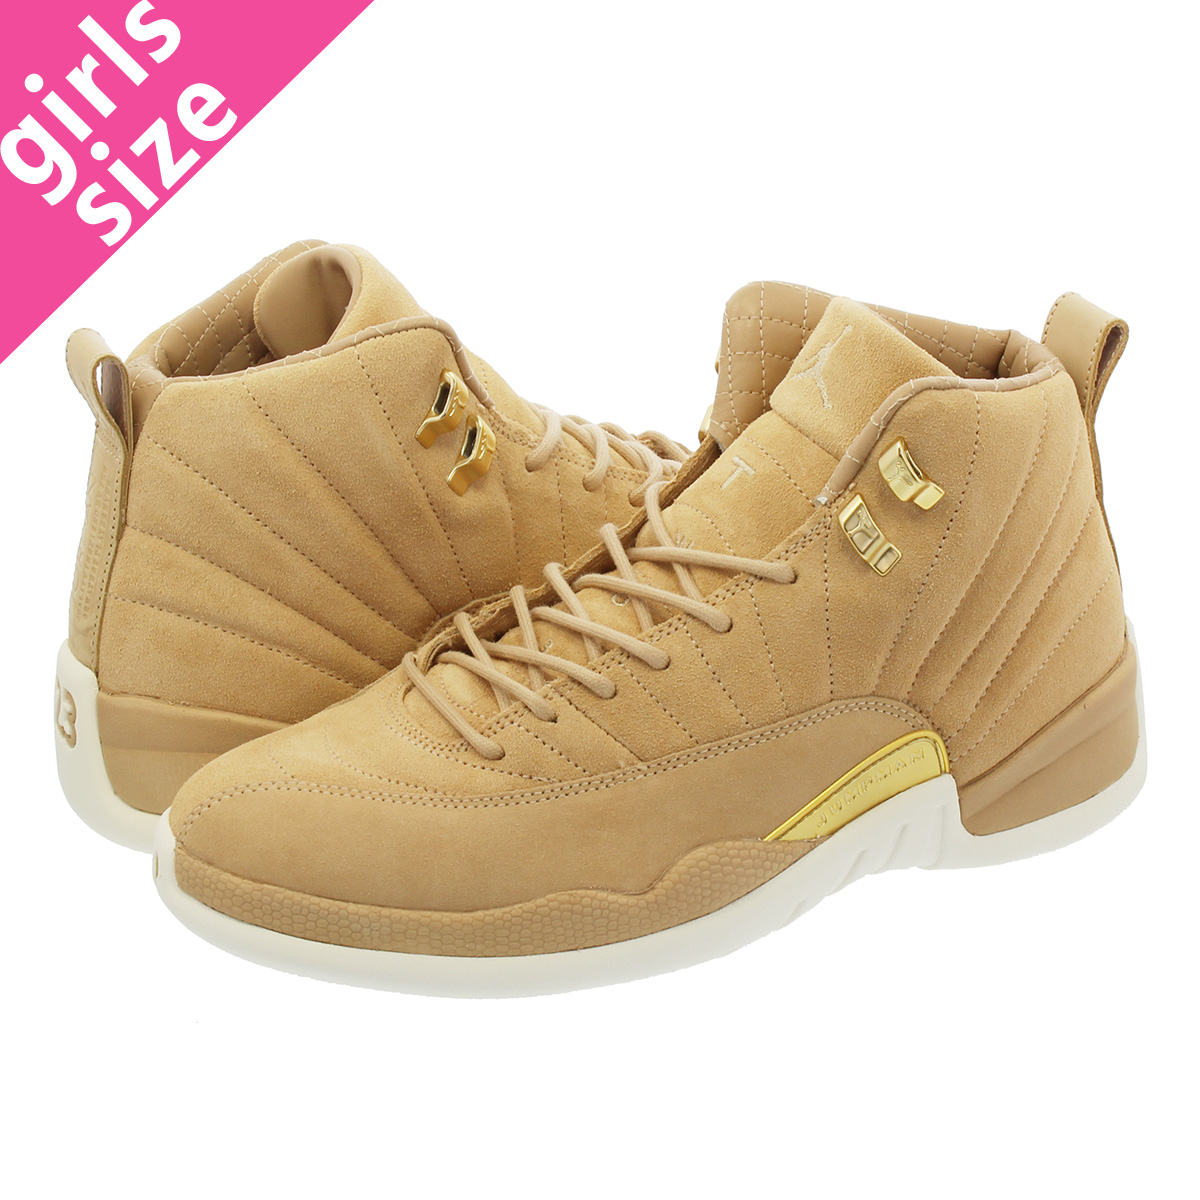 finest selection b9e0d 7184e NIKE WMNS AIR JORDAN 12 RETRO Nike women Air Jordan 12 nostalgic VACHETTA  TAN MTLC GOLD SAIL ao6068-203-l